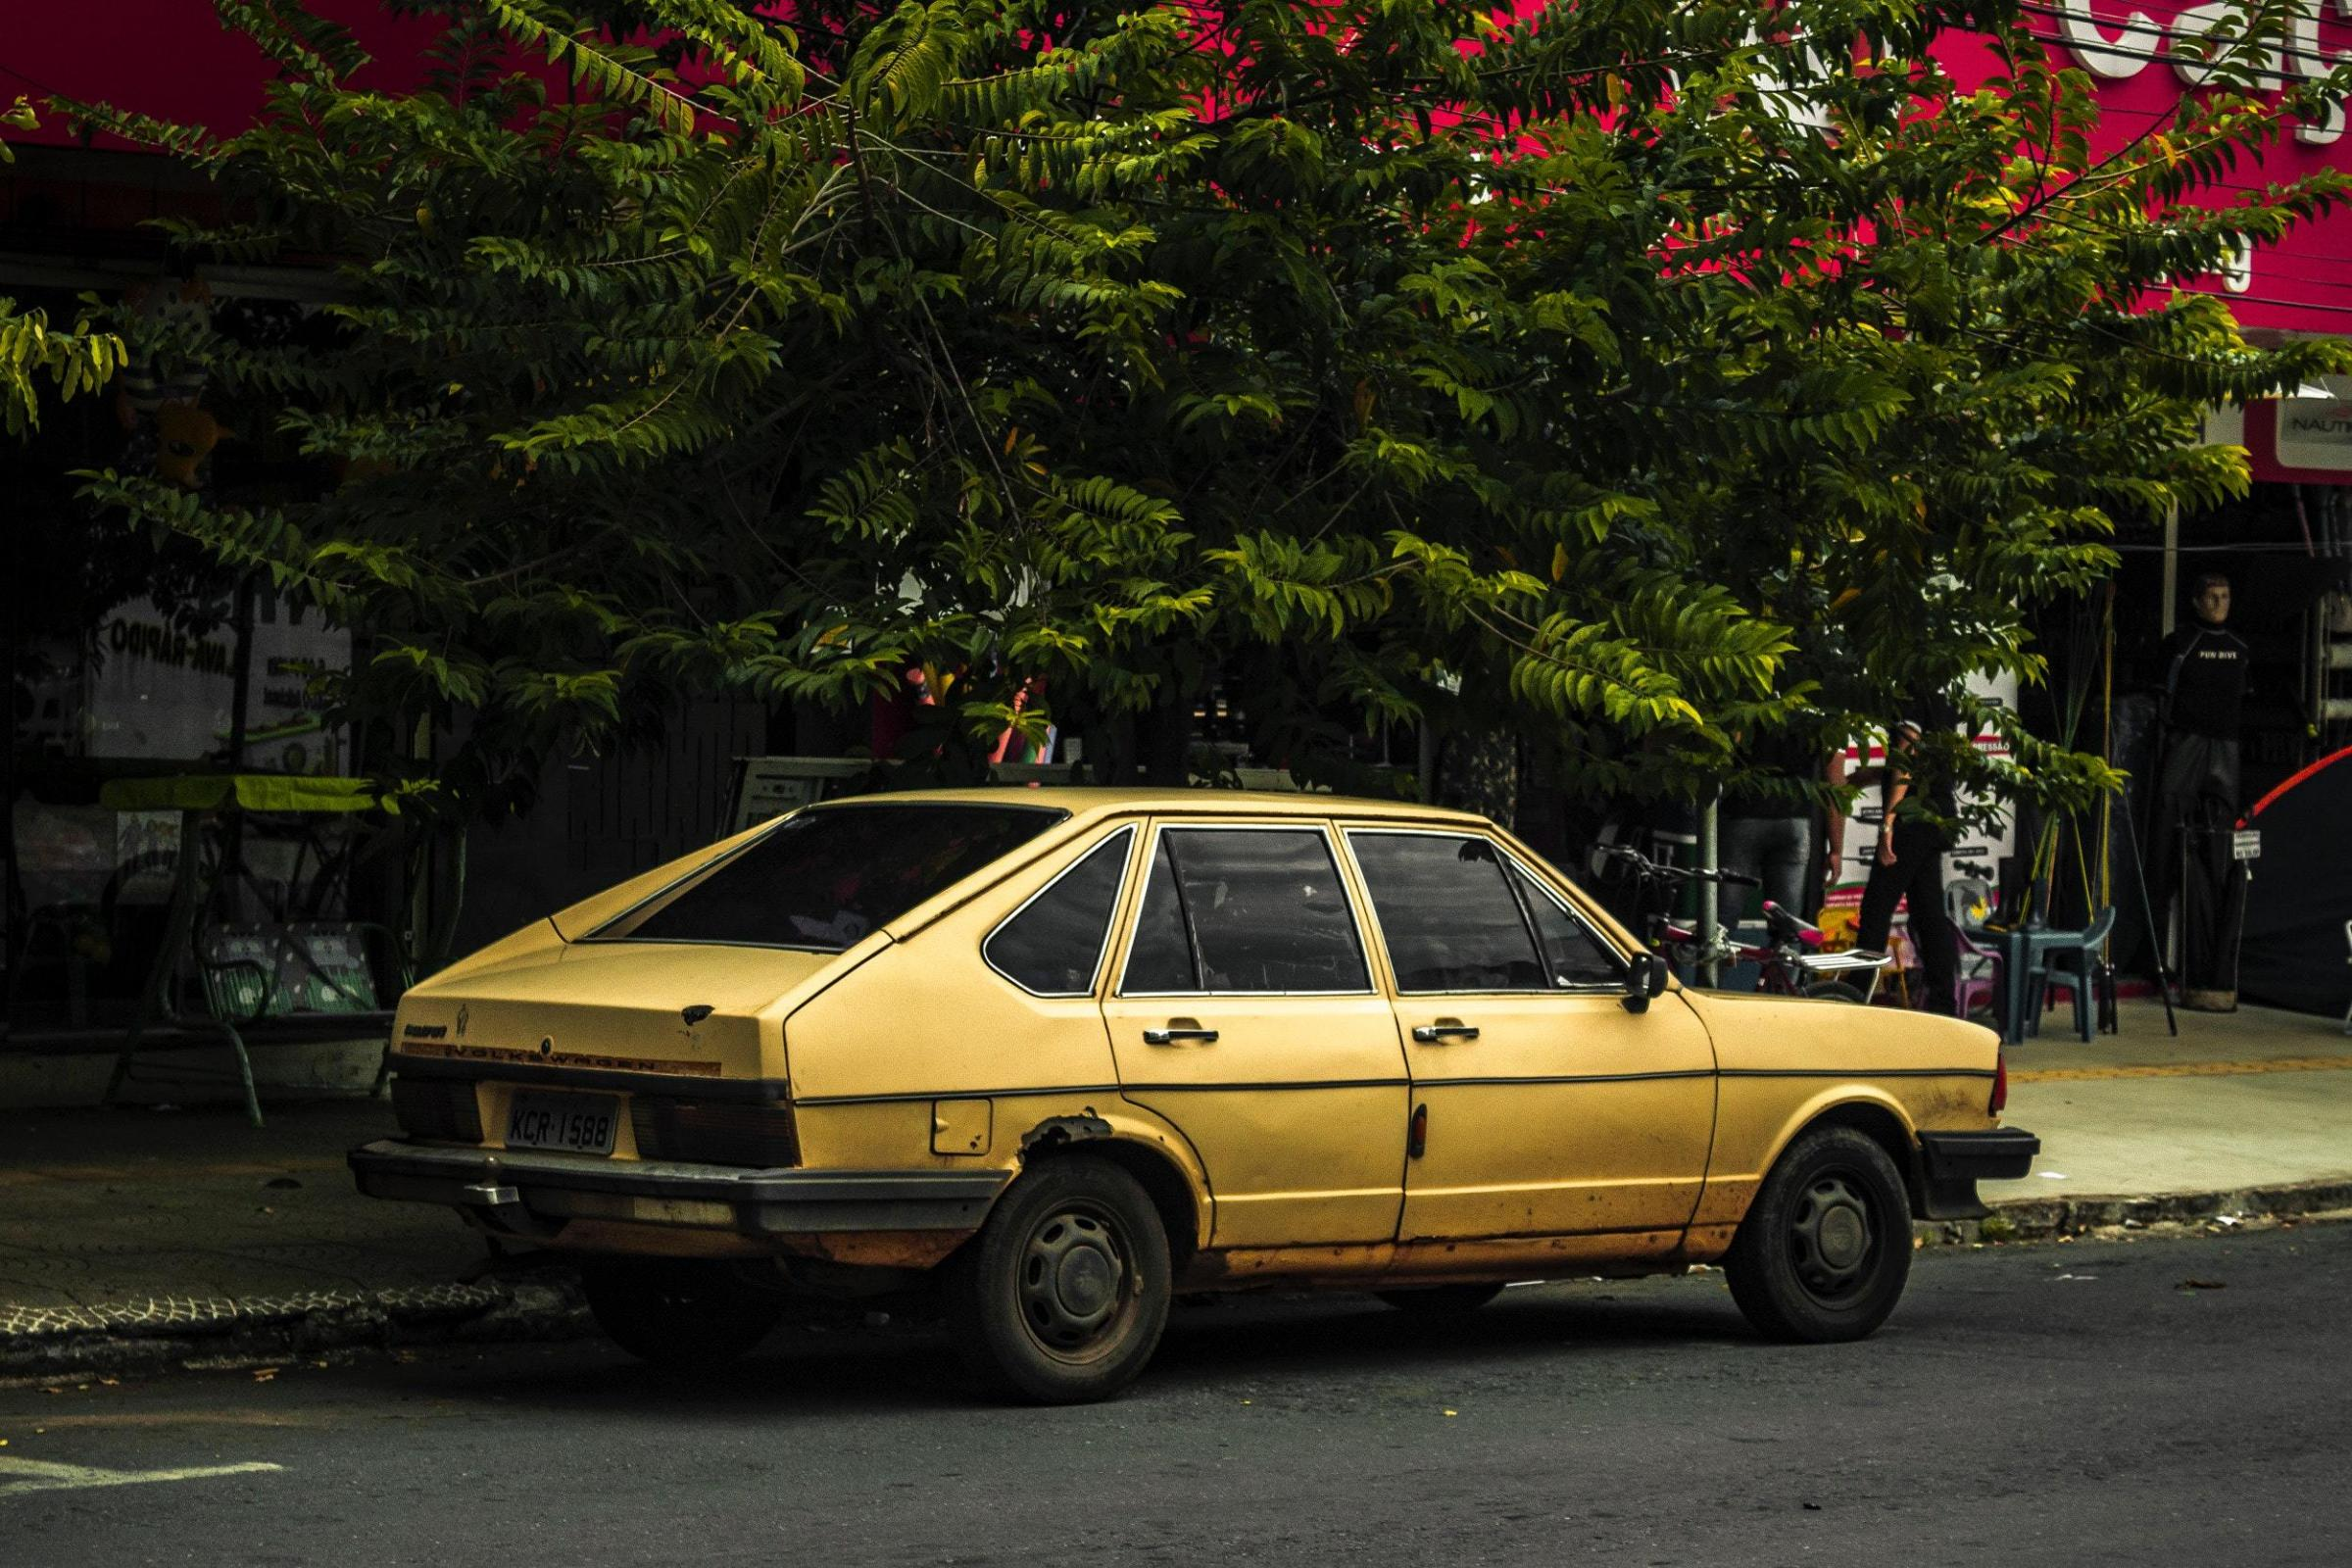 Classic or banger? Brett Ellis muses on the perils of buying a second hand car. Photo: PIxabay